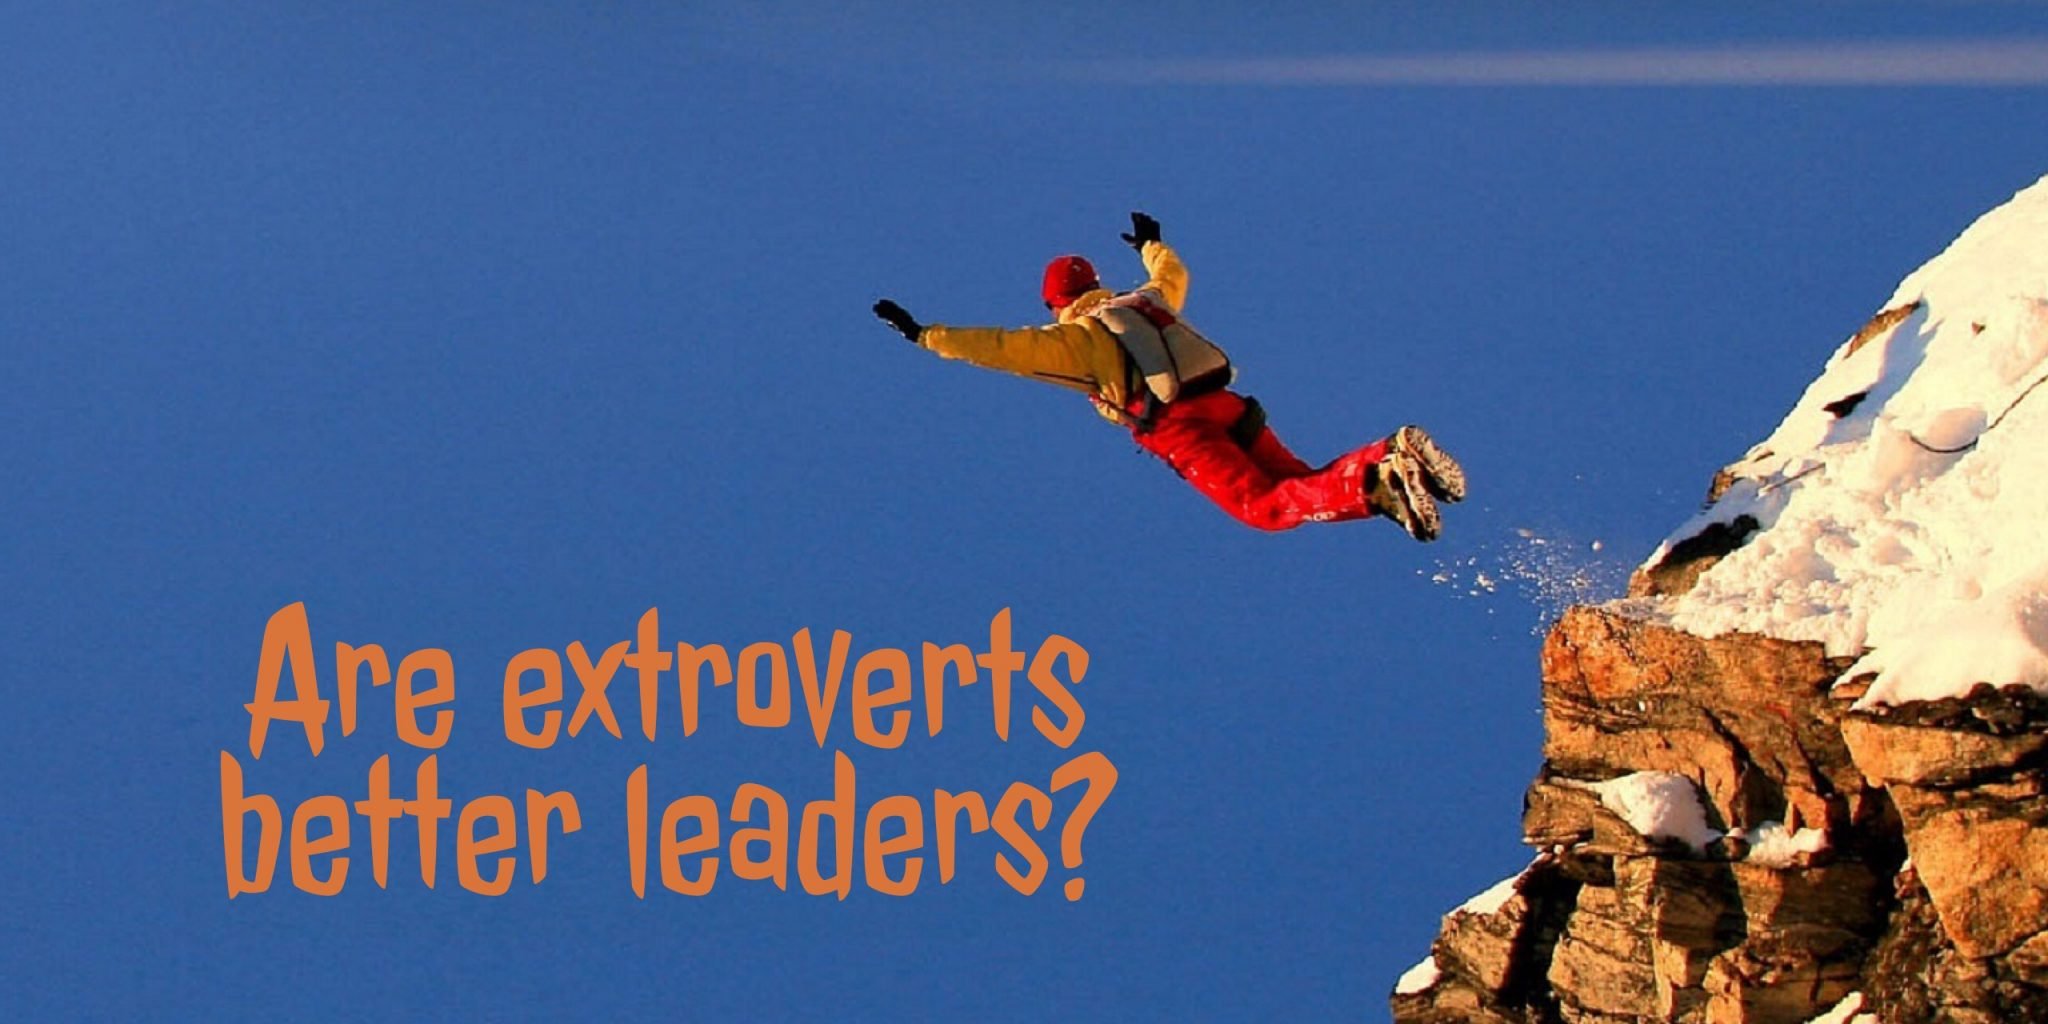 Eric Barker on extroverts